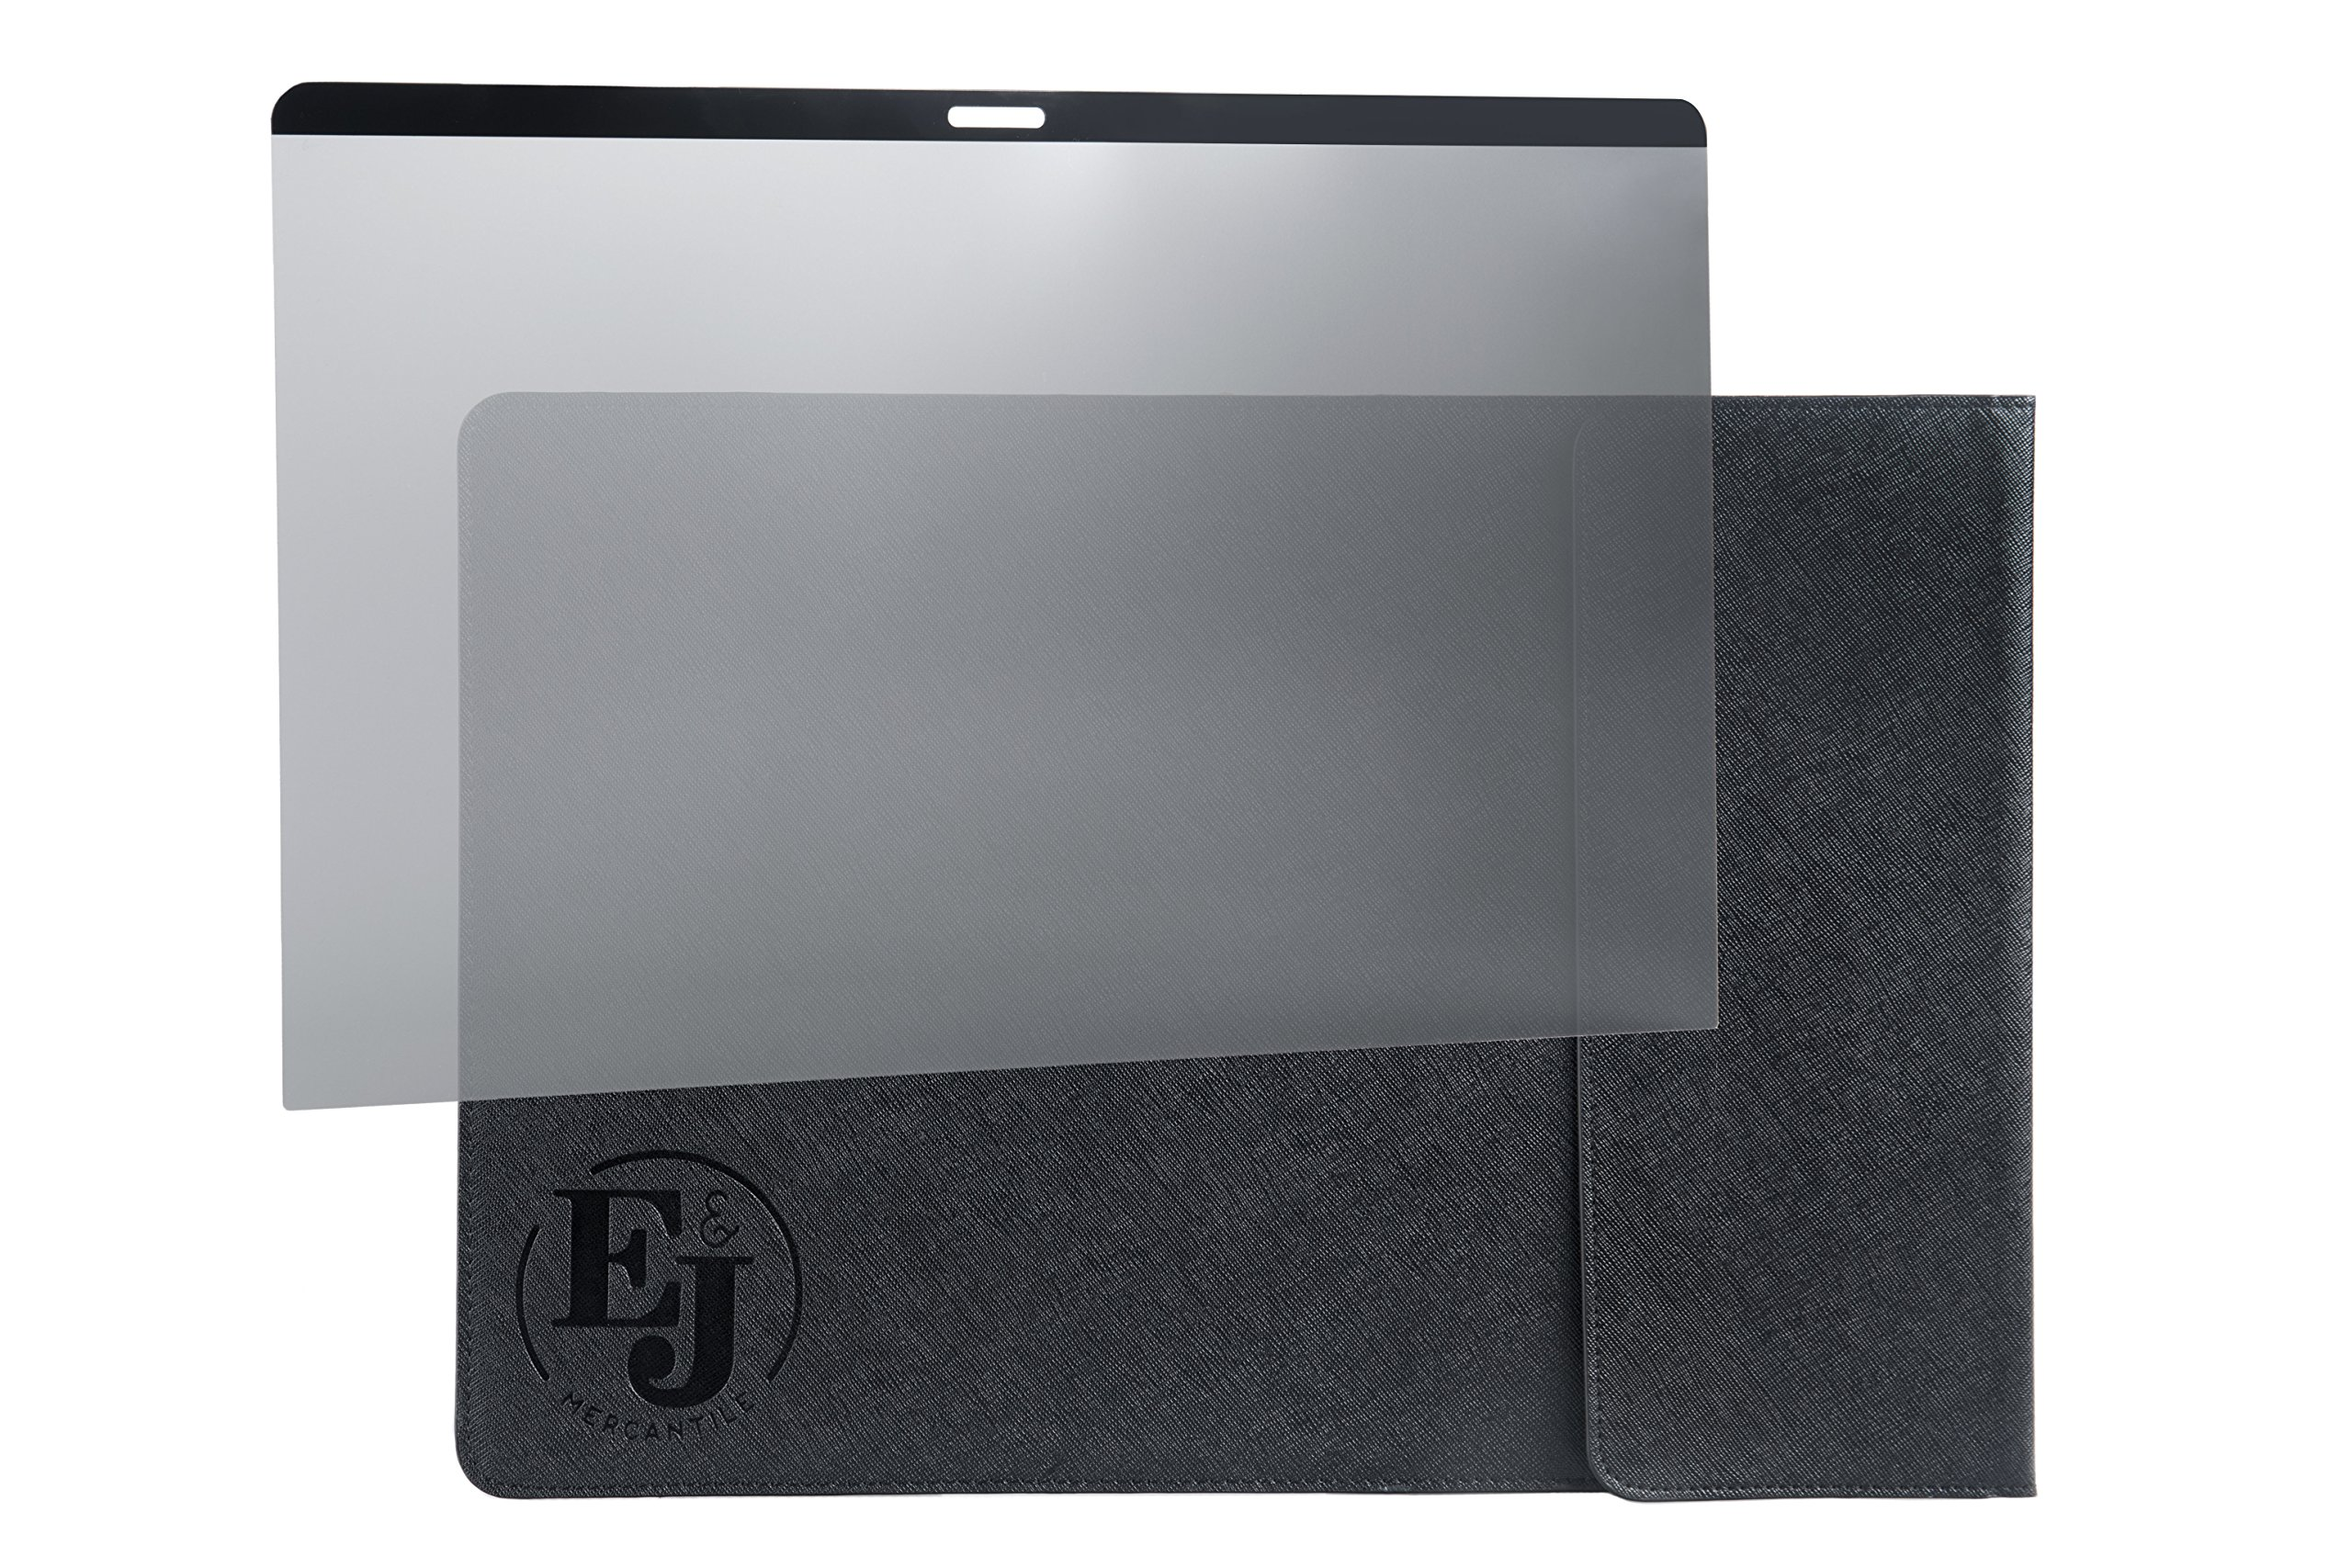 E&J MAGNETIC Privacy Screen - Compatible with MacBook Pro 13 inch Touch Bar ONLY - BONUS Leather Sleeve